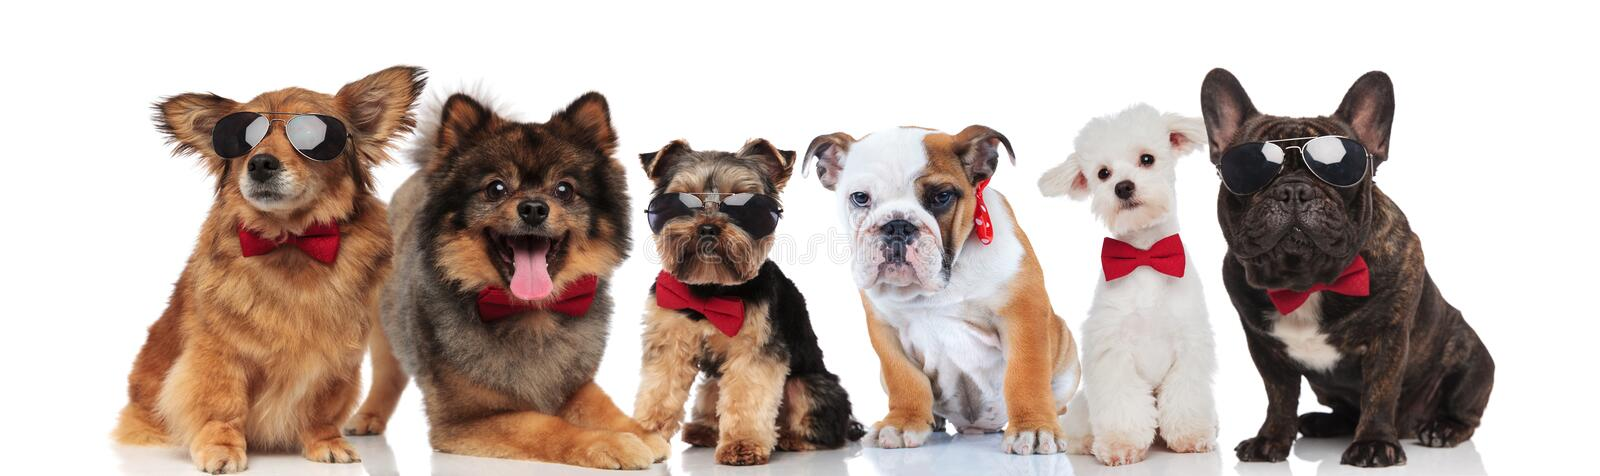 Group of six adorable dogs of different breeds wearing bowties royalty free stock photo